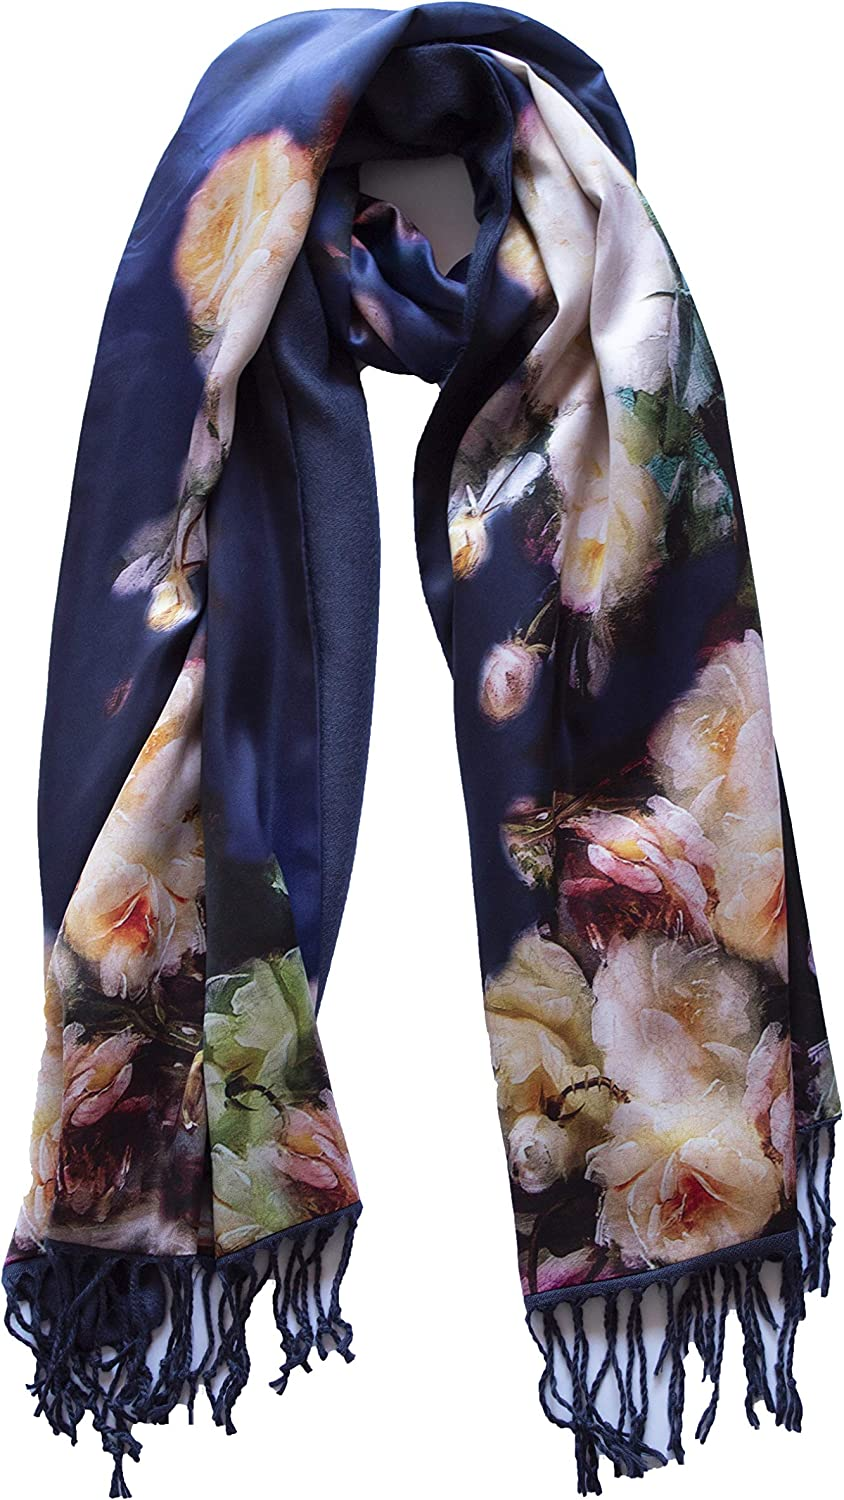 Westlook's Women's Premium silk and Cachmere Scarf Large Hand Painted Silk and Cashmere Scarf Fashion Accessory 72